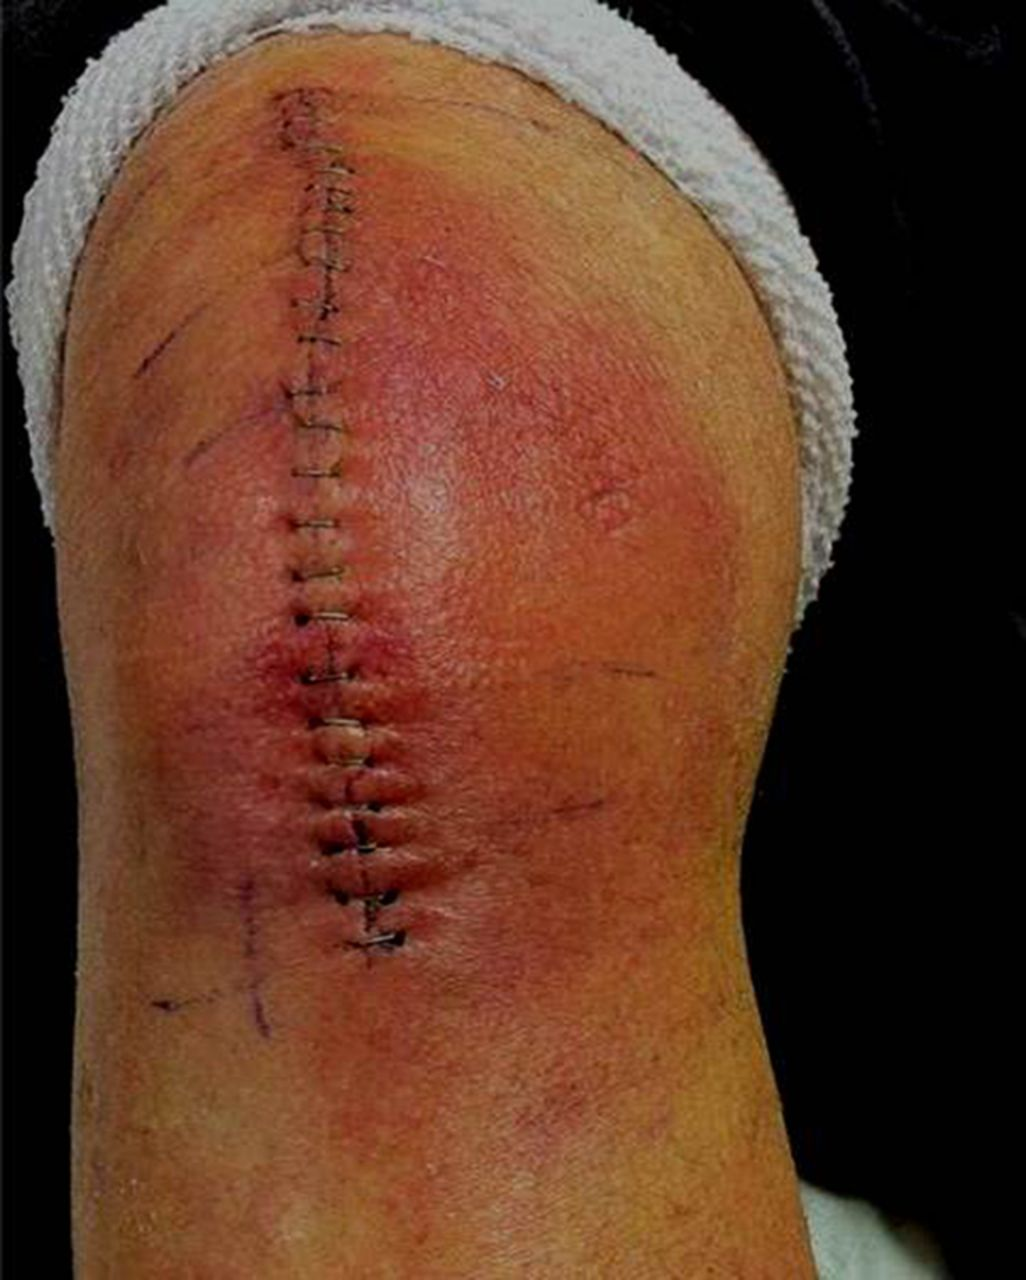 infected surgical wound of total knee replacement nursing essay In this paper we discuss the background, structure, aims and rationale of this   infection following hip and knee replacement is a serious complication  and a  return to surgery for a repeat arthroplasty more than six weeks later   cunningham c, clinical nurse specialist, infection prevention & control,.